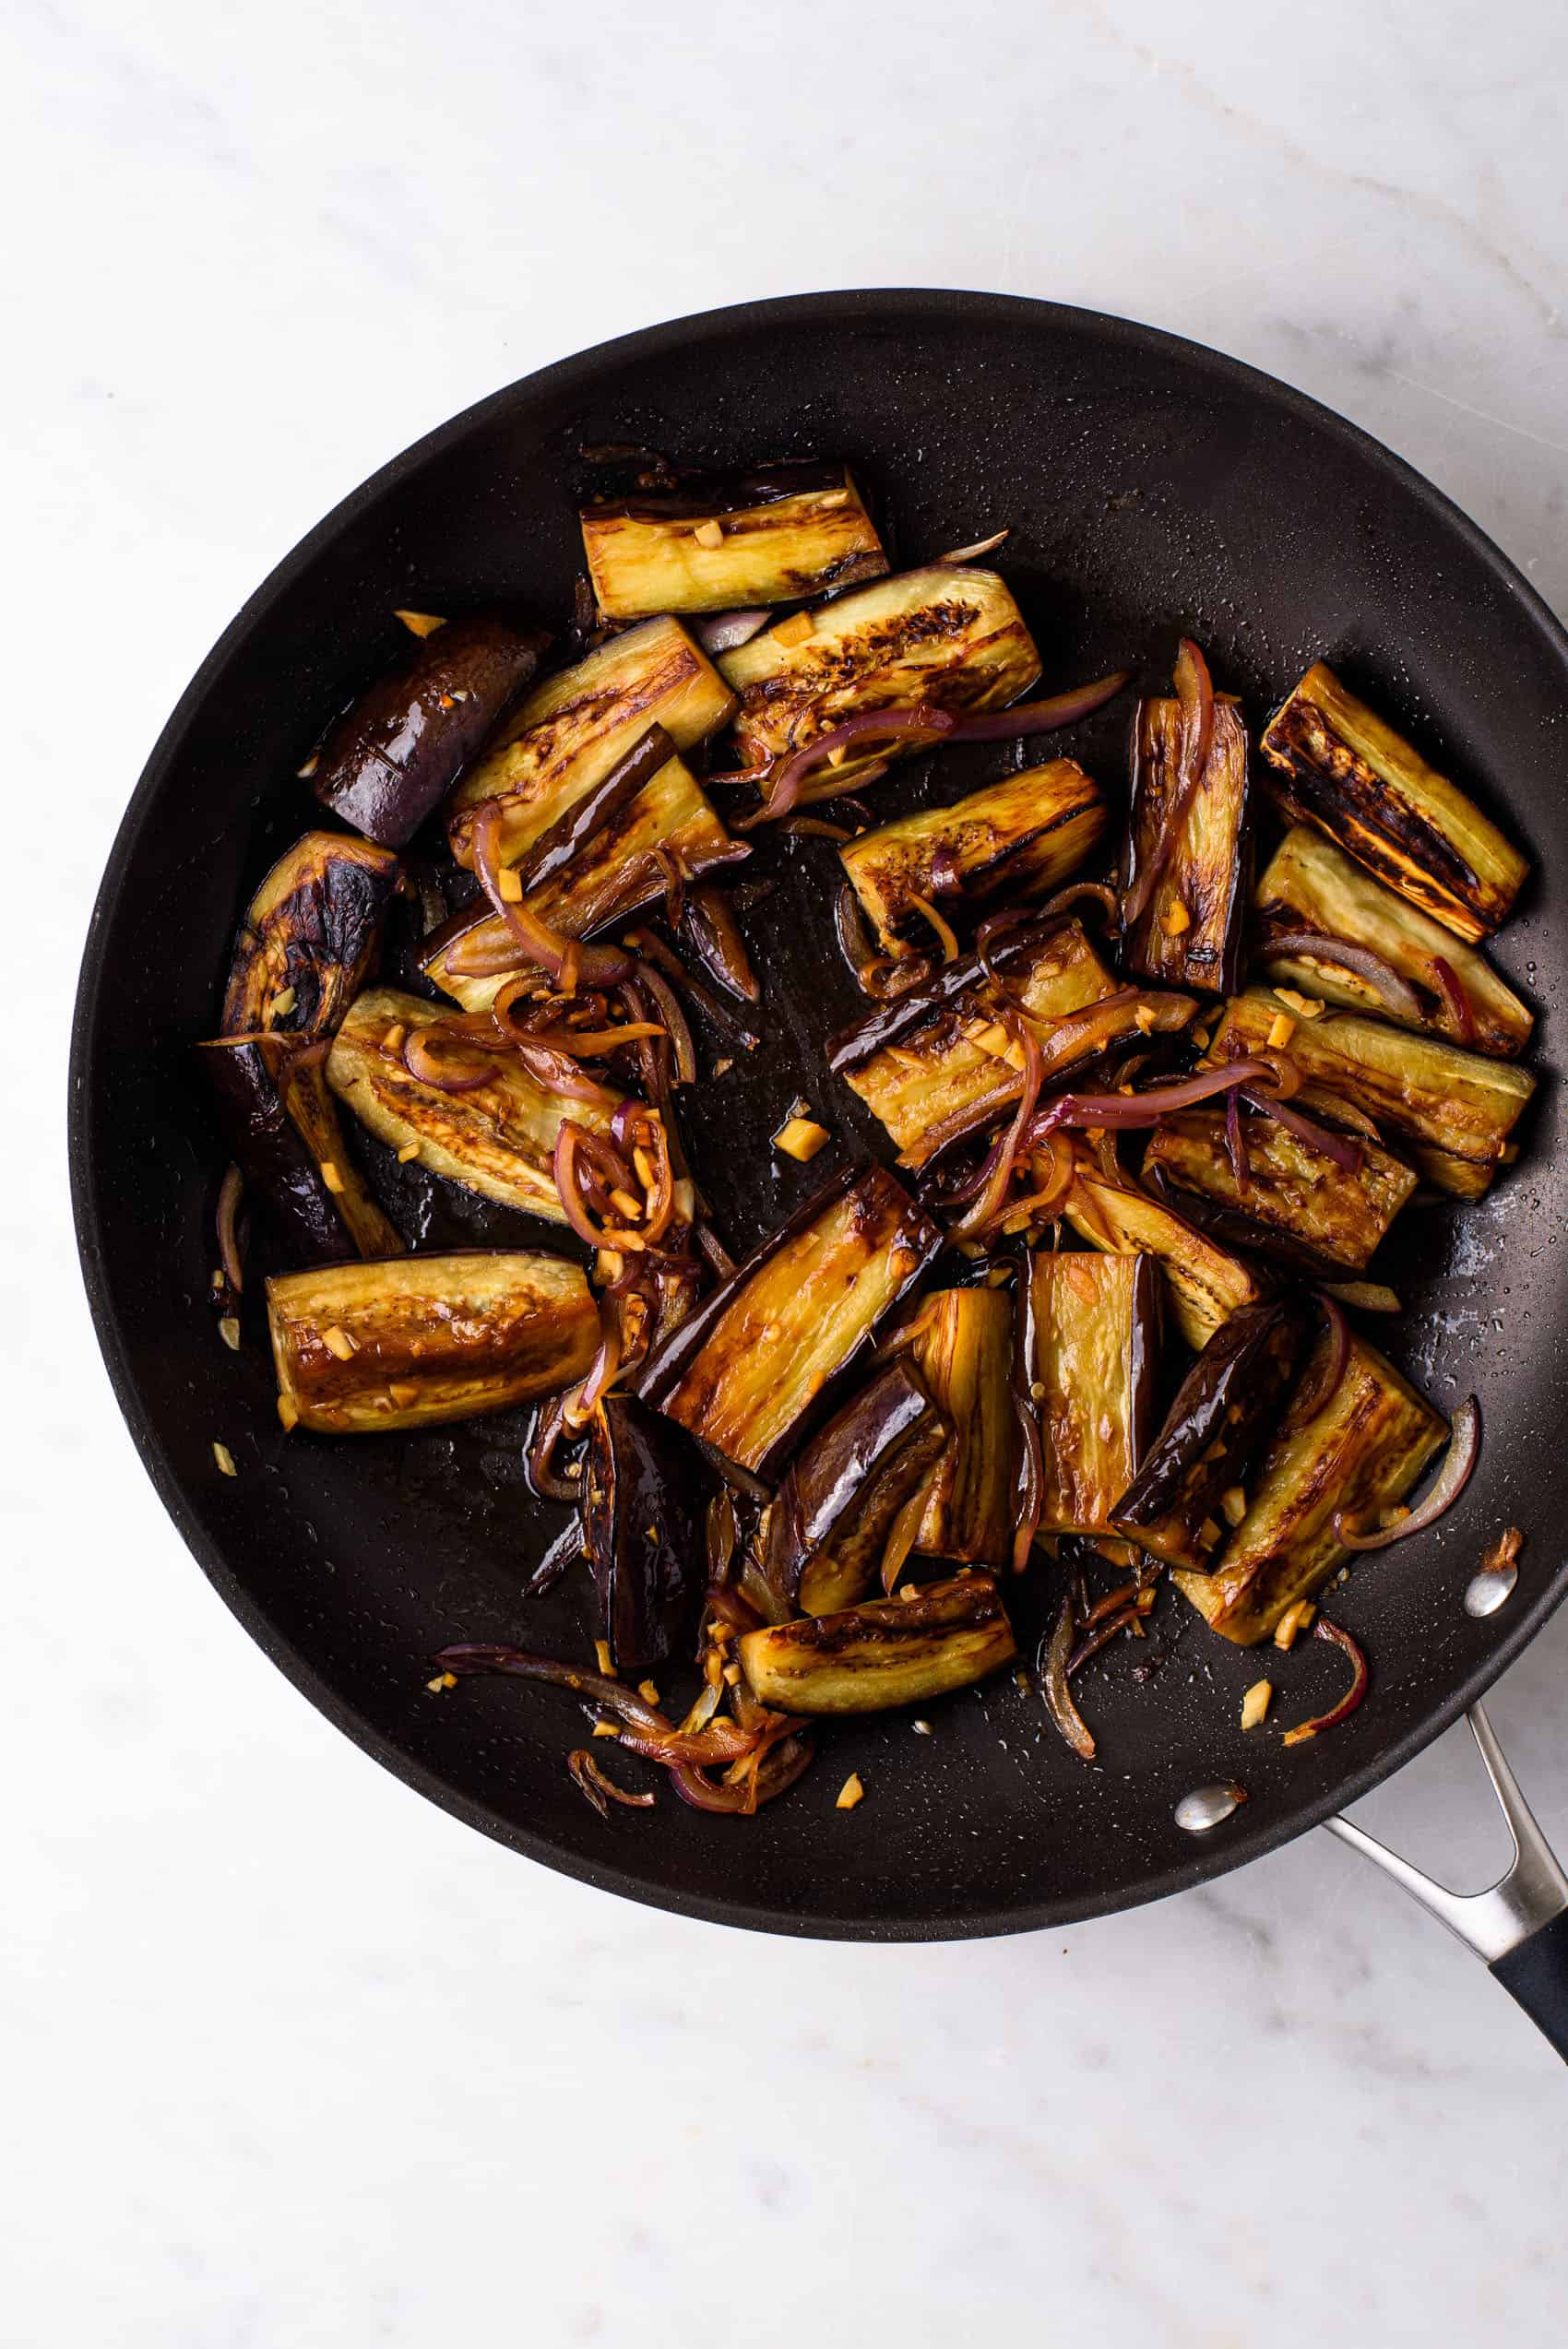 Soy-glazed eggplant in a non-stick skillet on a marble table